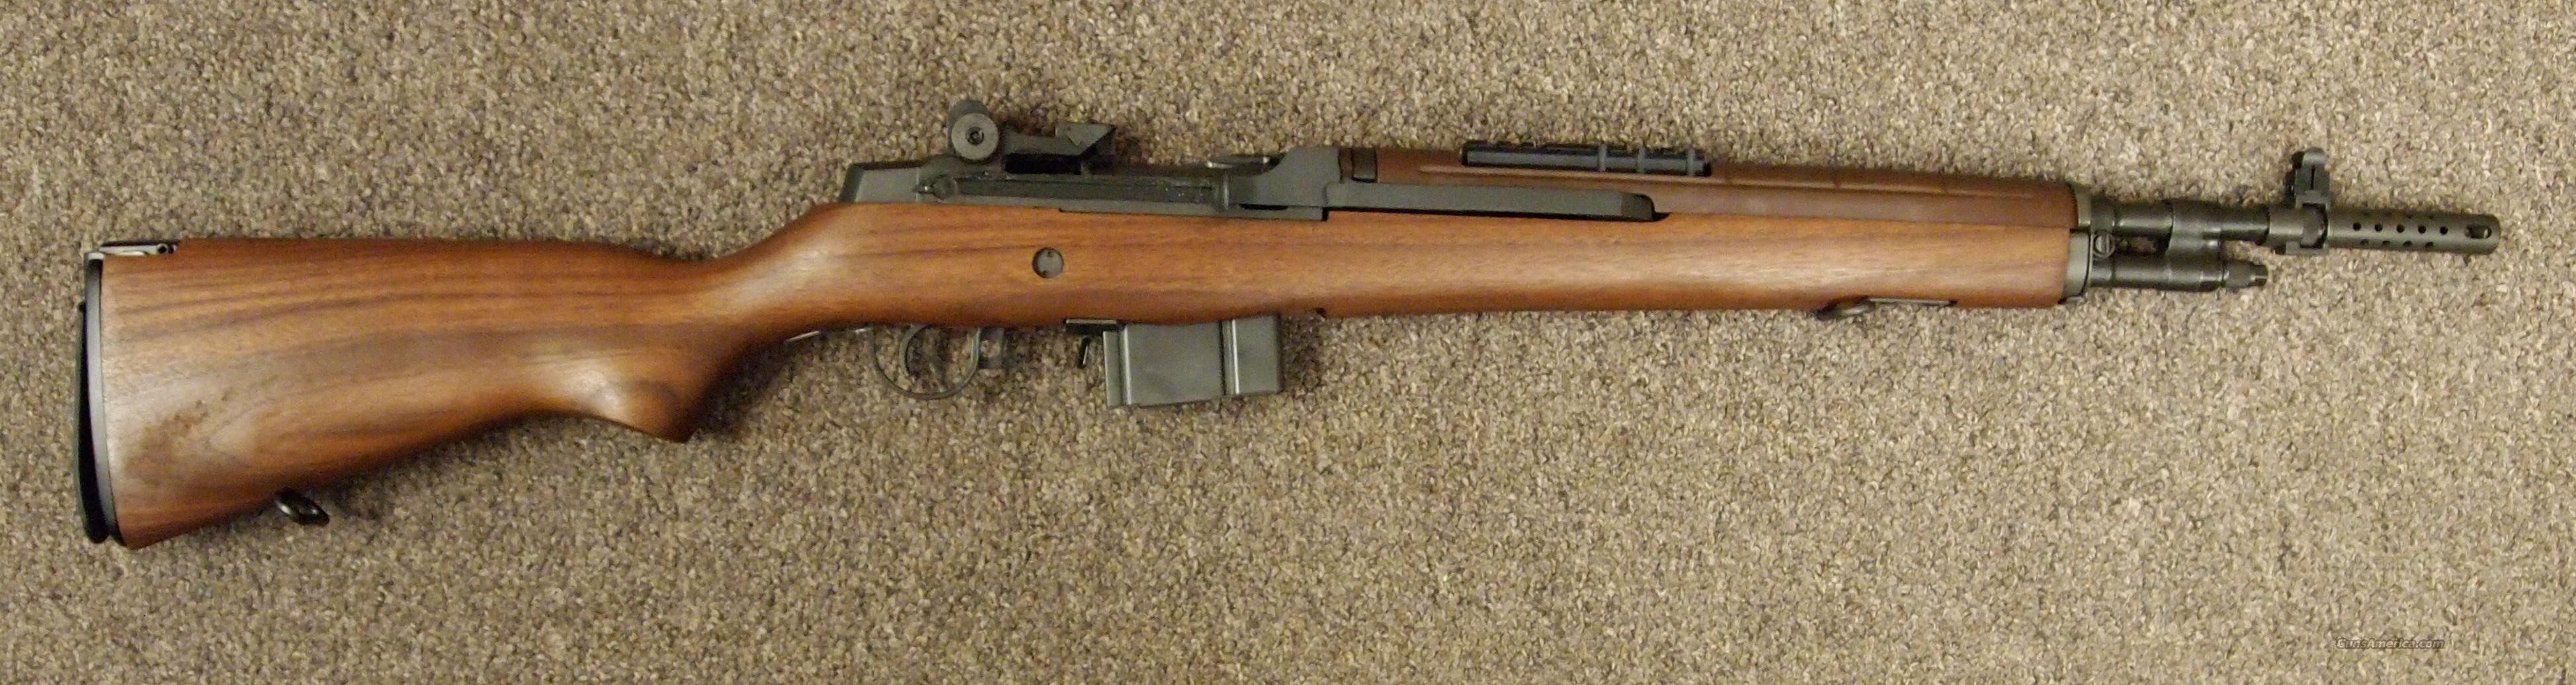 Springfield Armory M1A Scout Squad  Guns > Rifles > Springfield Armory Rifles > M1A/M14